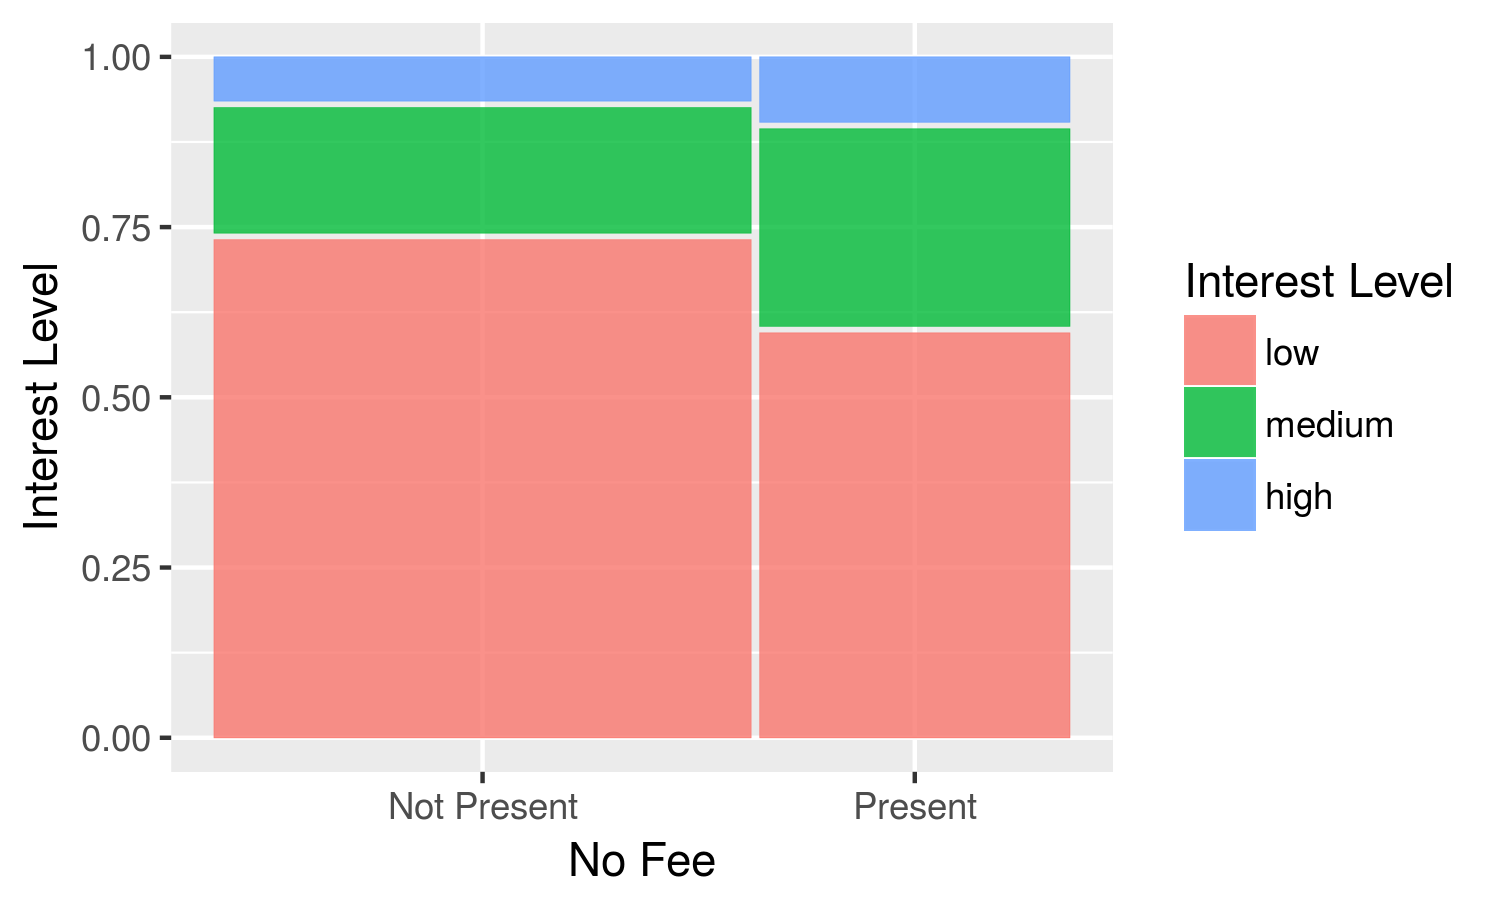 Distribution of interest levels with respect to no fee listings